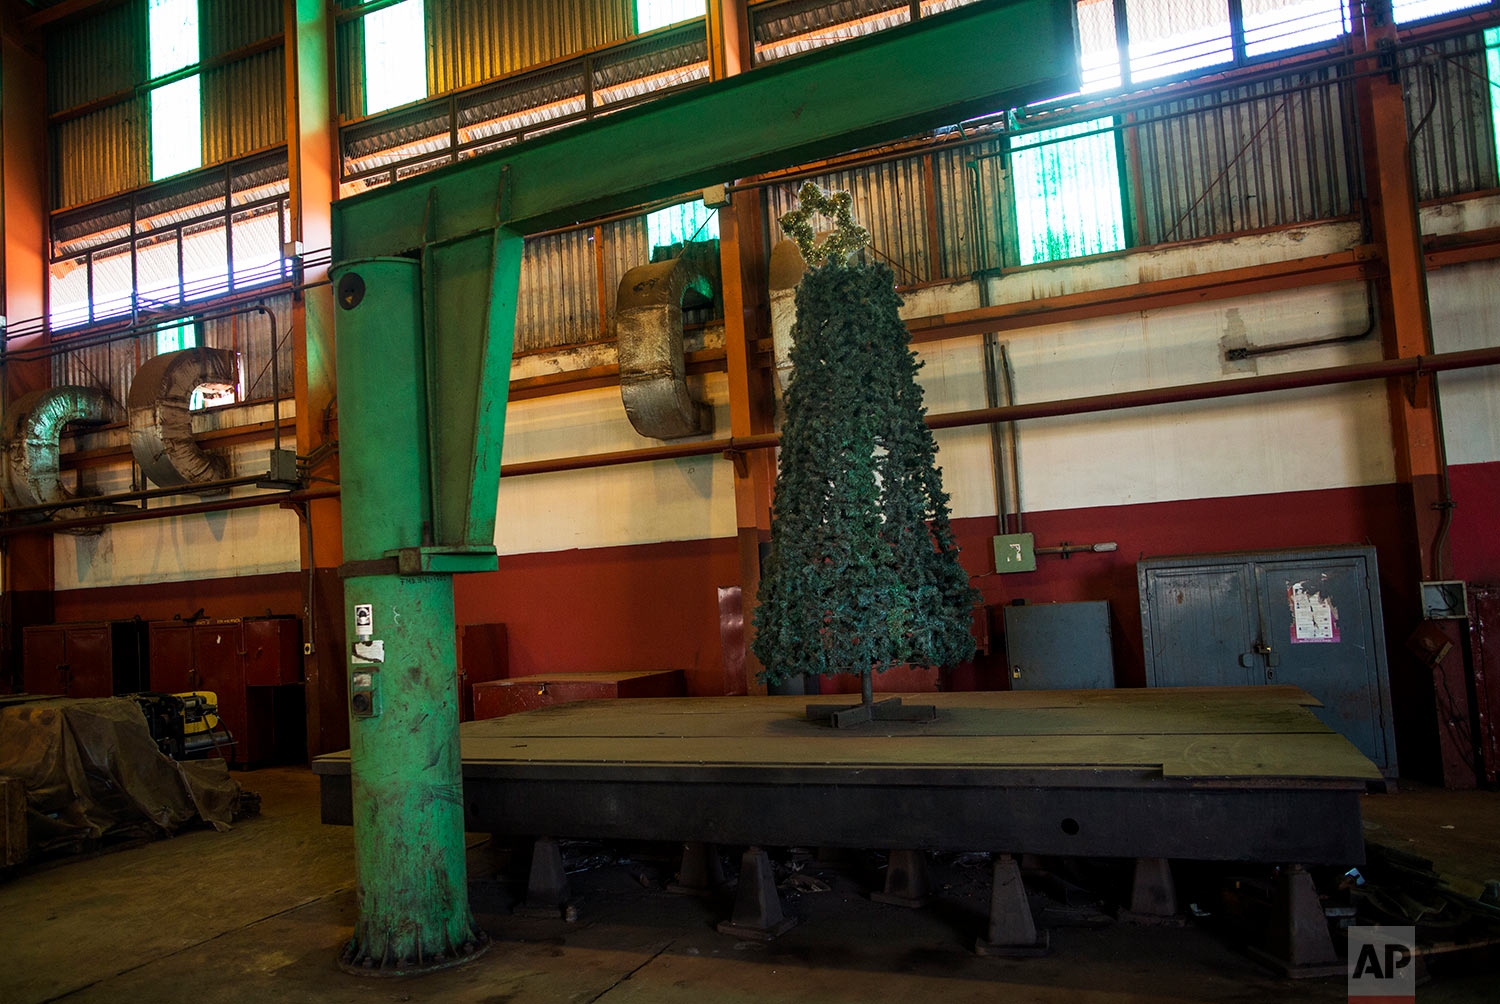 In this Nov. 3, 2017 photo, a Christmas tree decorates the Pellas steel plant in Ciudad Guayana, Bolivar state, Venezuela. Years of neglect and mismanagement have left in decay Ciudad Guayana, a once-thriving would-be Pittsburgh carved from the jungles in the 1950s. (AP Photo/Rodrigo Abd)